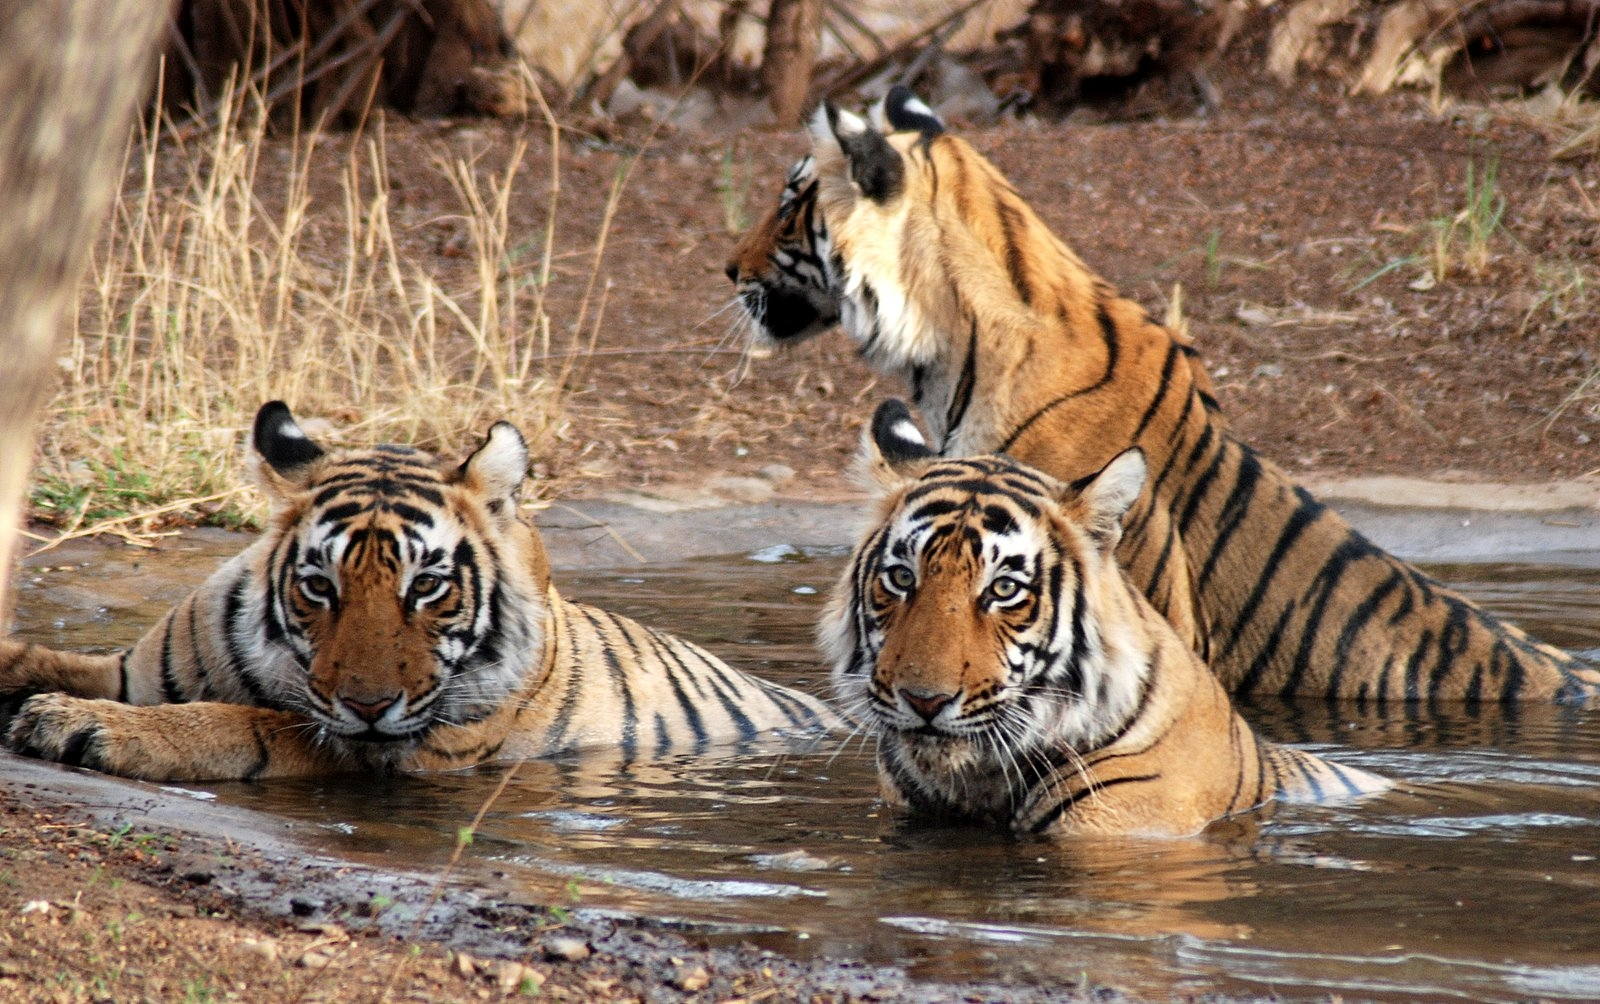 Tigers at Kanha National Park